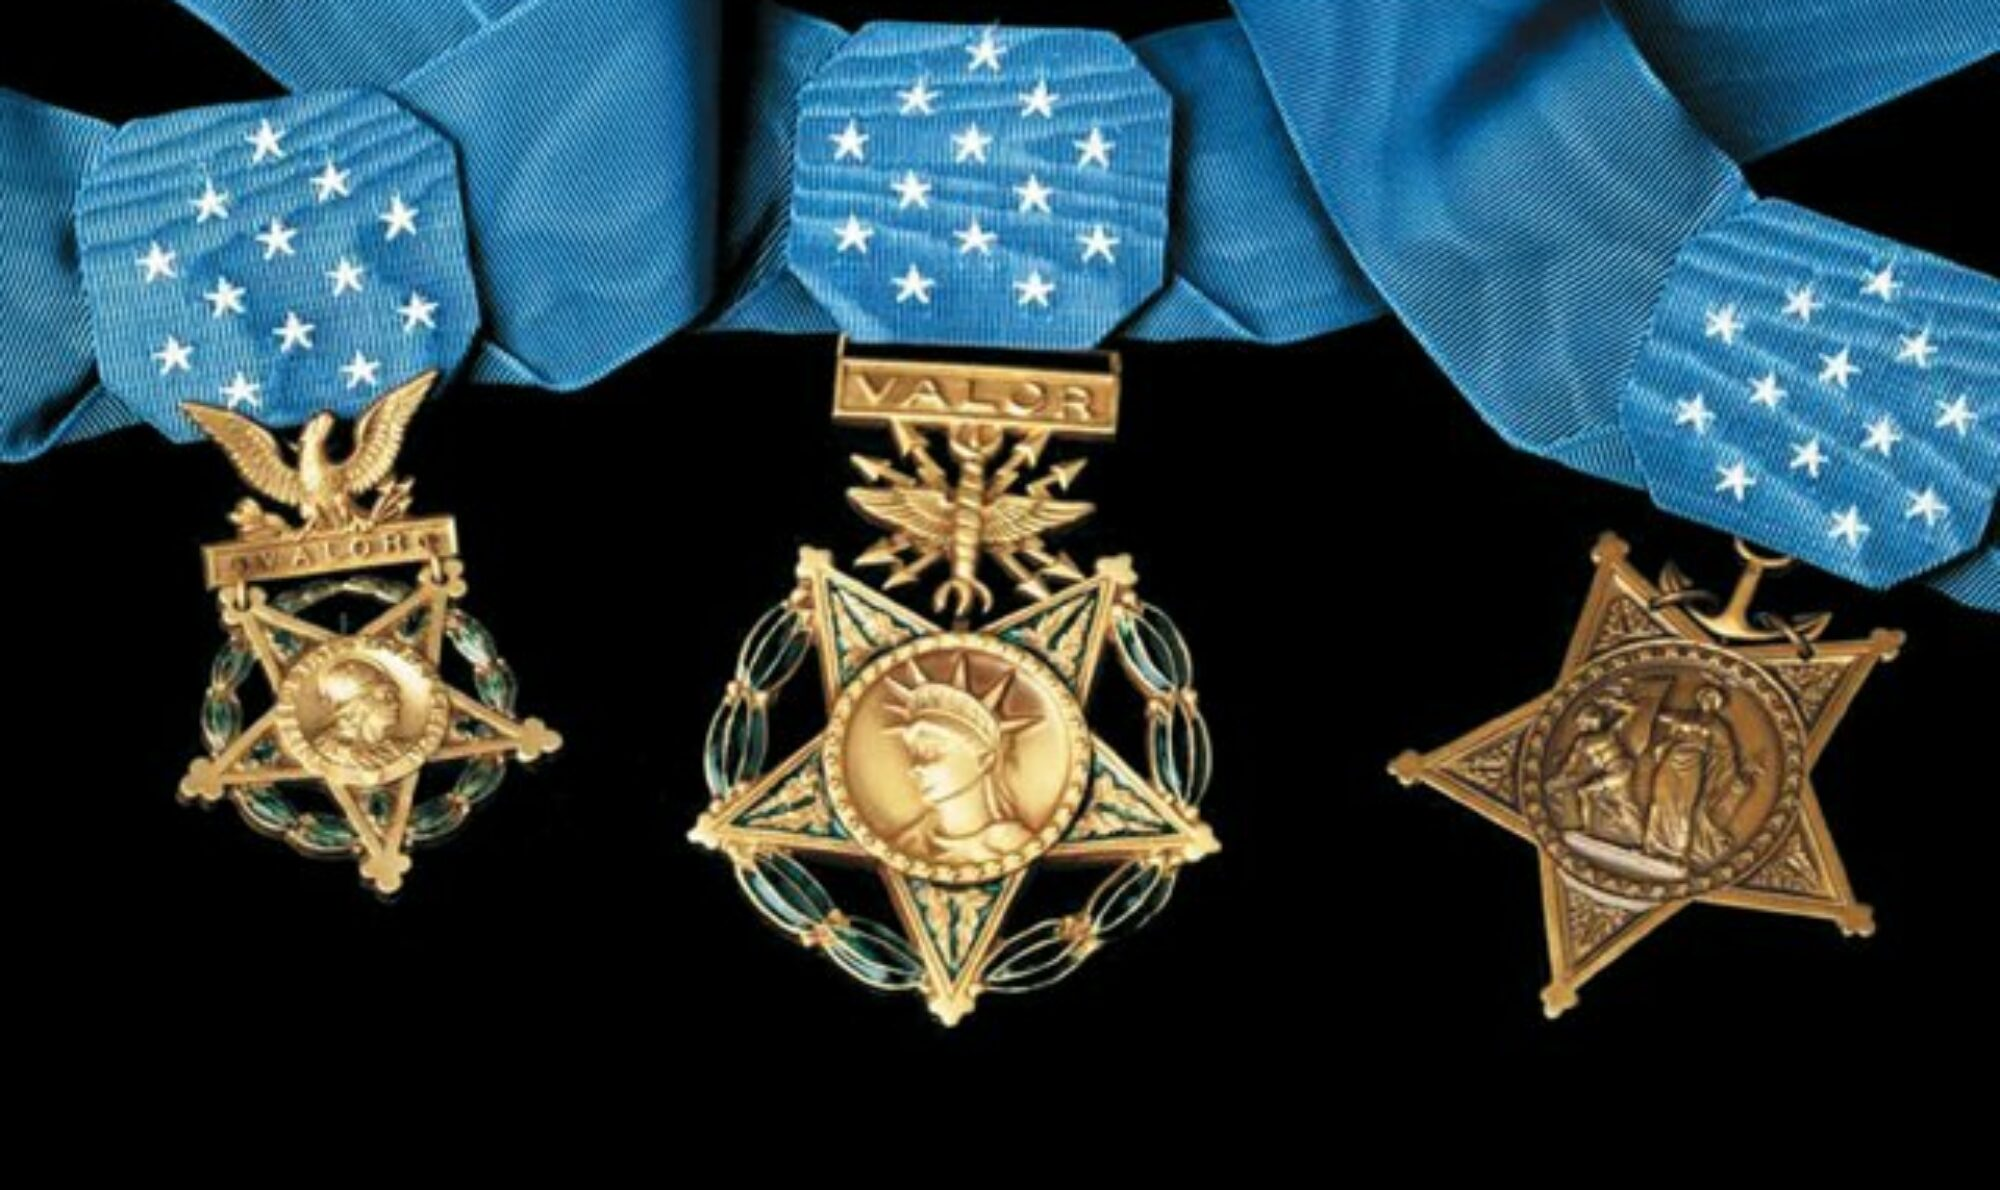 Nebraska Medal of Honor Foundation